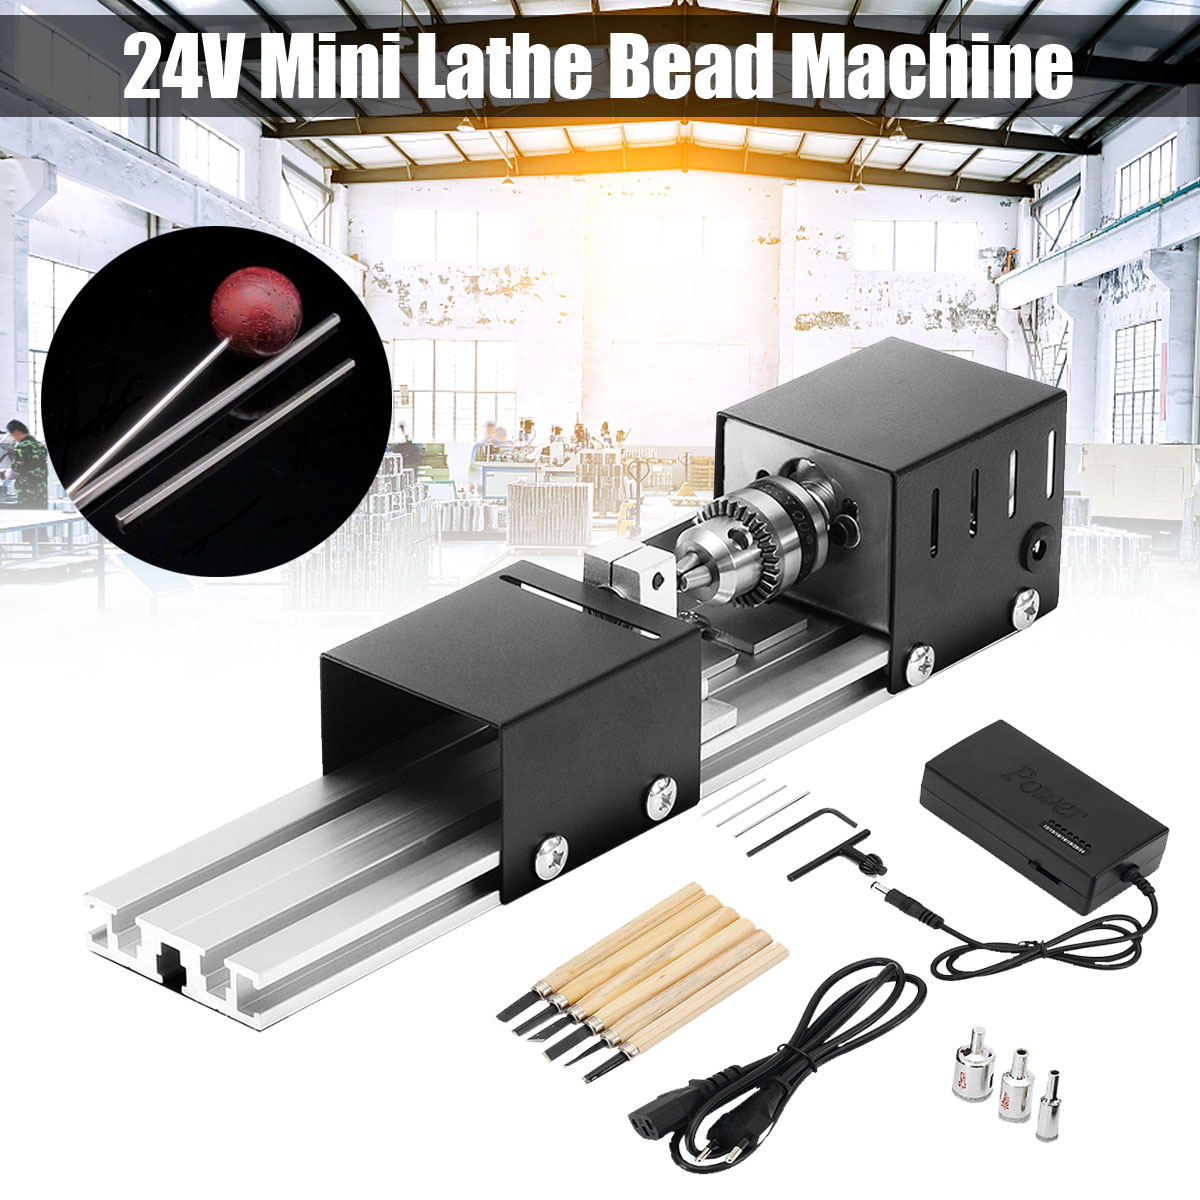 Mini Lathe Machine Woodworking DIY Lathe Set with DC 24V 80W Power Adapter 3 Pcs Beads Round Device 6 ChiselMini Lathe Machine Woodworking DIY Lathe Set with DC 24V 80W Power Adapter 3 Pcs Beads Round Device 6 Chisel